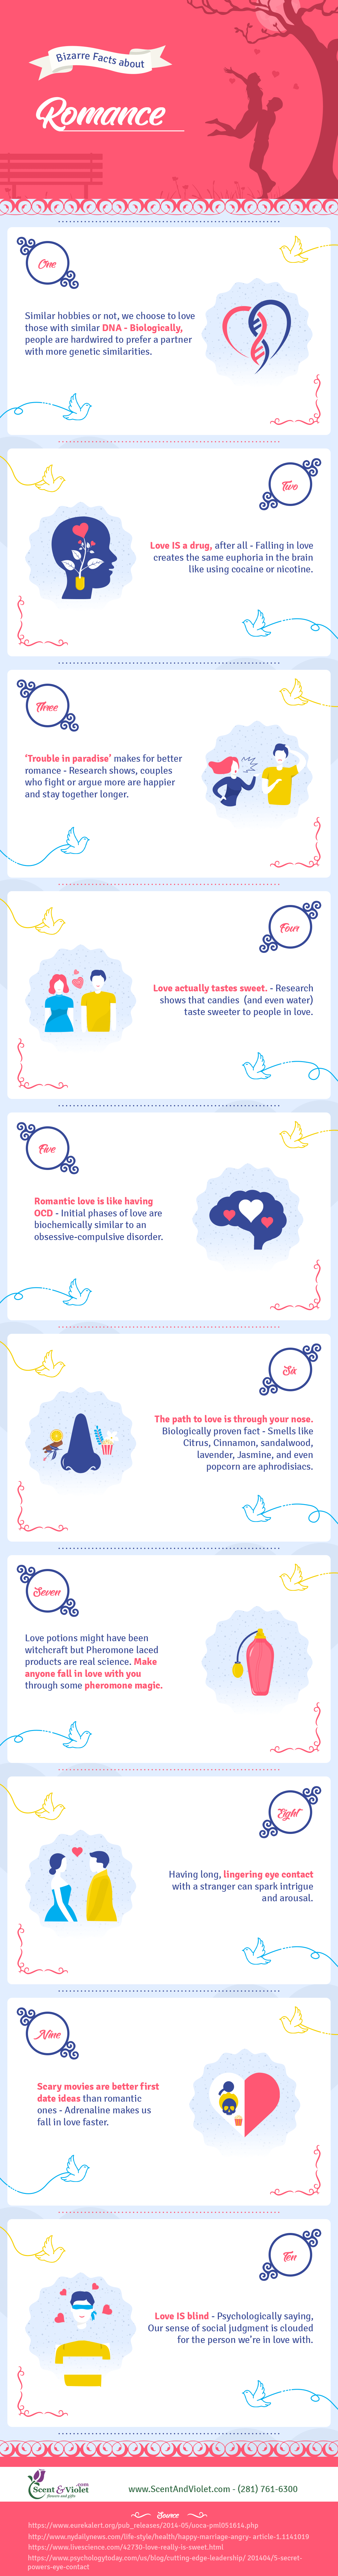 Bizarre facts about romance infographic